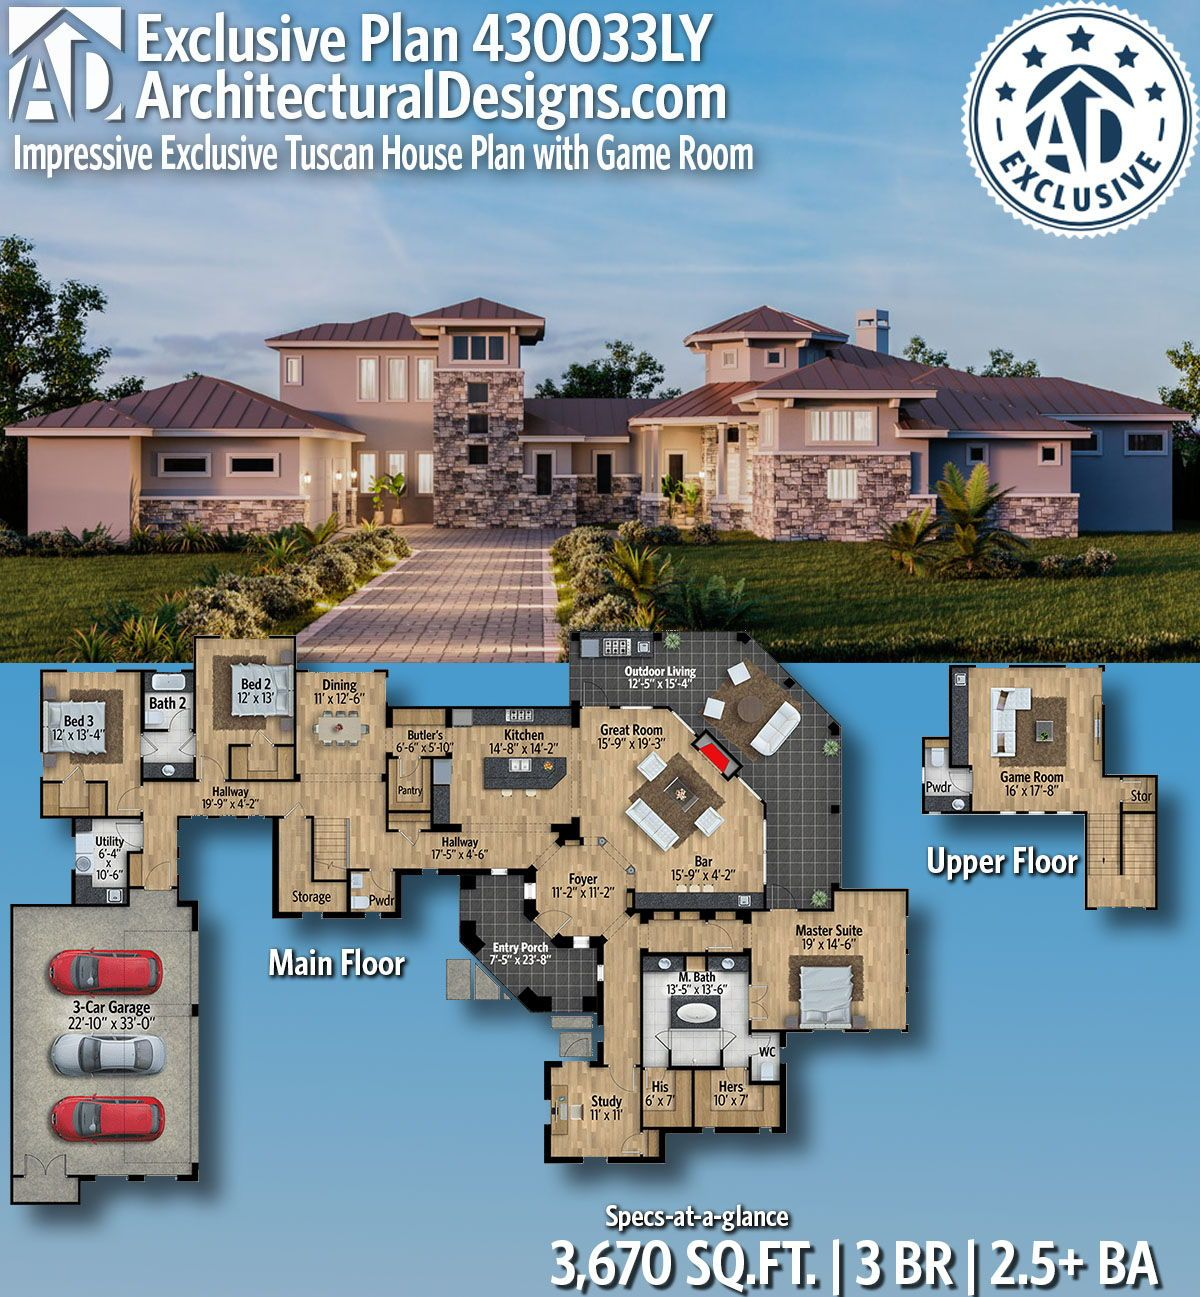 Plan 430033ly Impressive Exclusive Tuscan House Plan With Game Room Tuscan House Plans House Plans Tuscan House